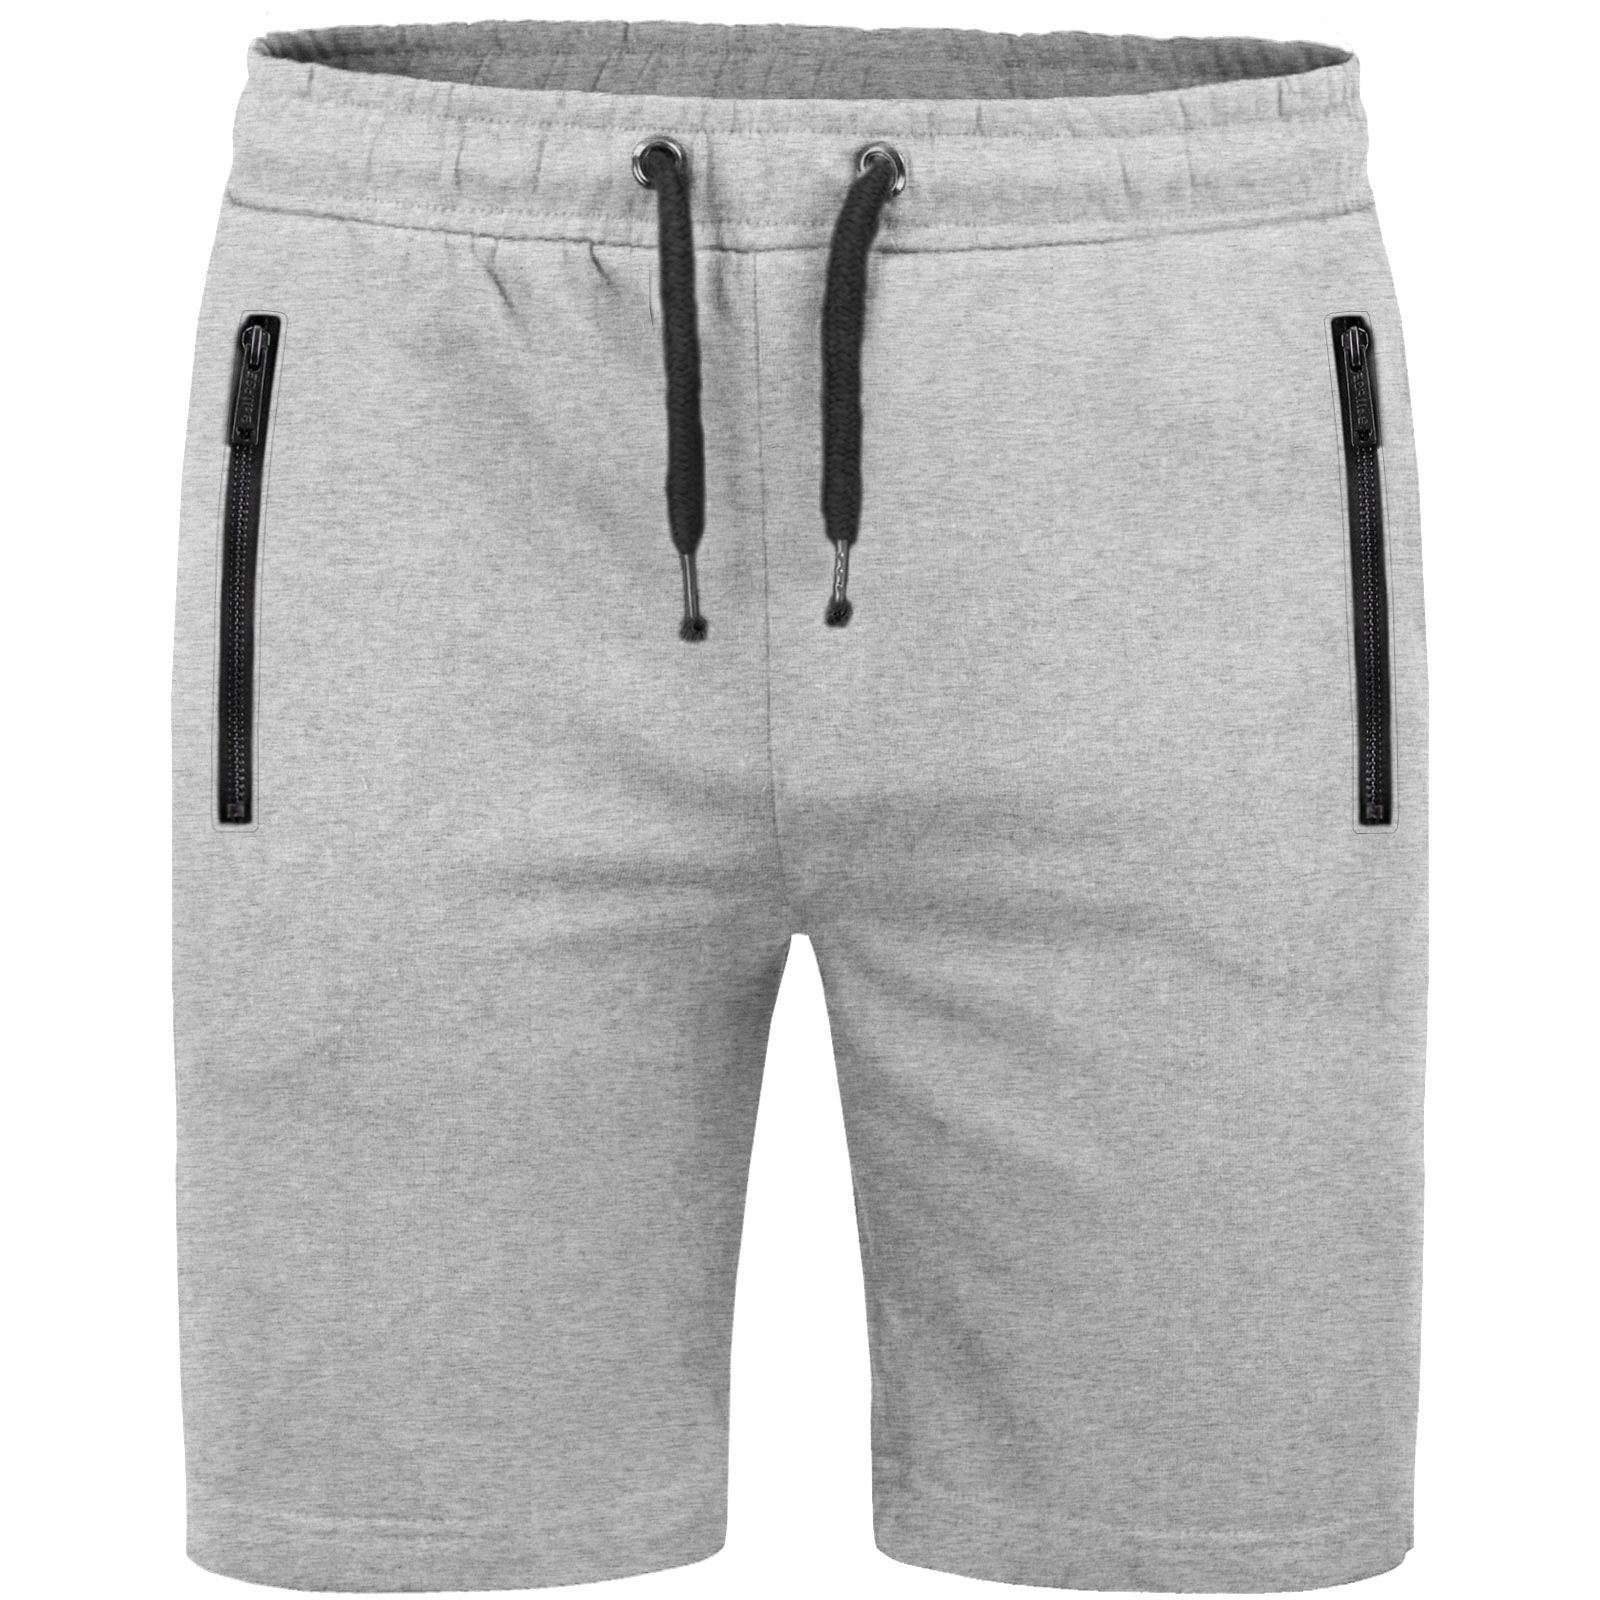 Mens Plain Gym Fleece Jogger Shorts Elasticated Waist Running Zip Pockets Big Fast Color Men's Clothing